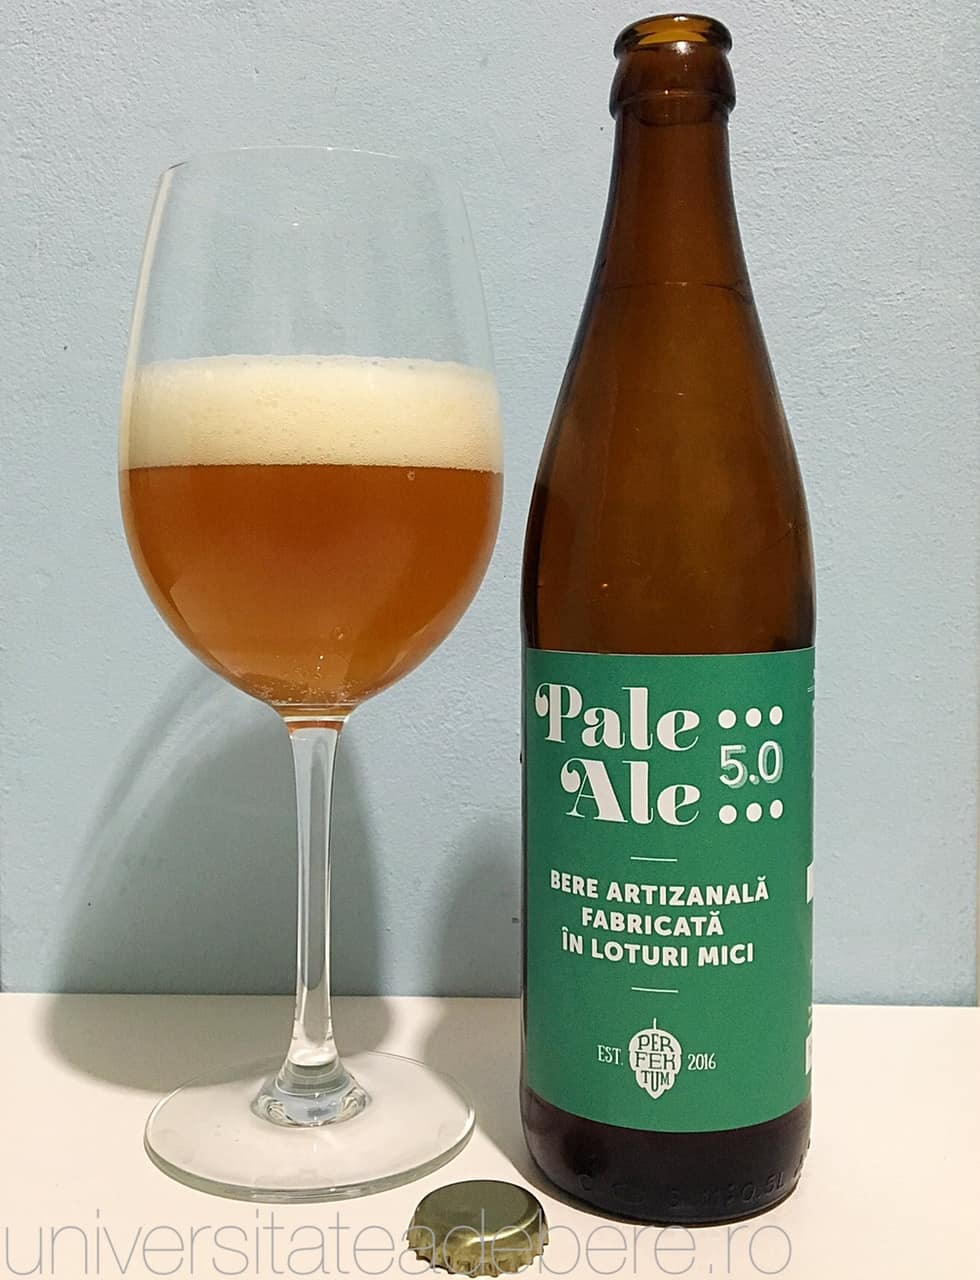 Photo of Perfektum Pale Ale, inca una artizanala din Berceni